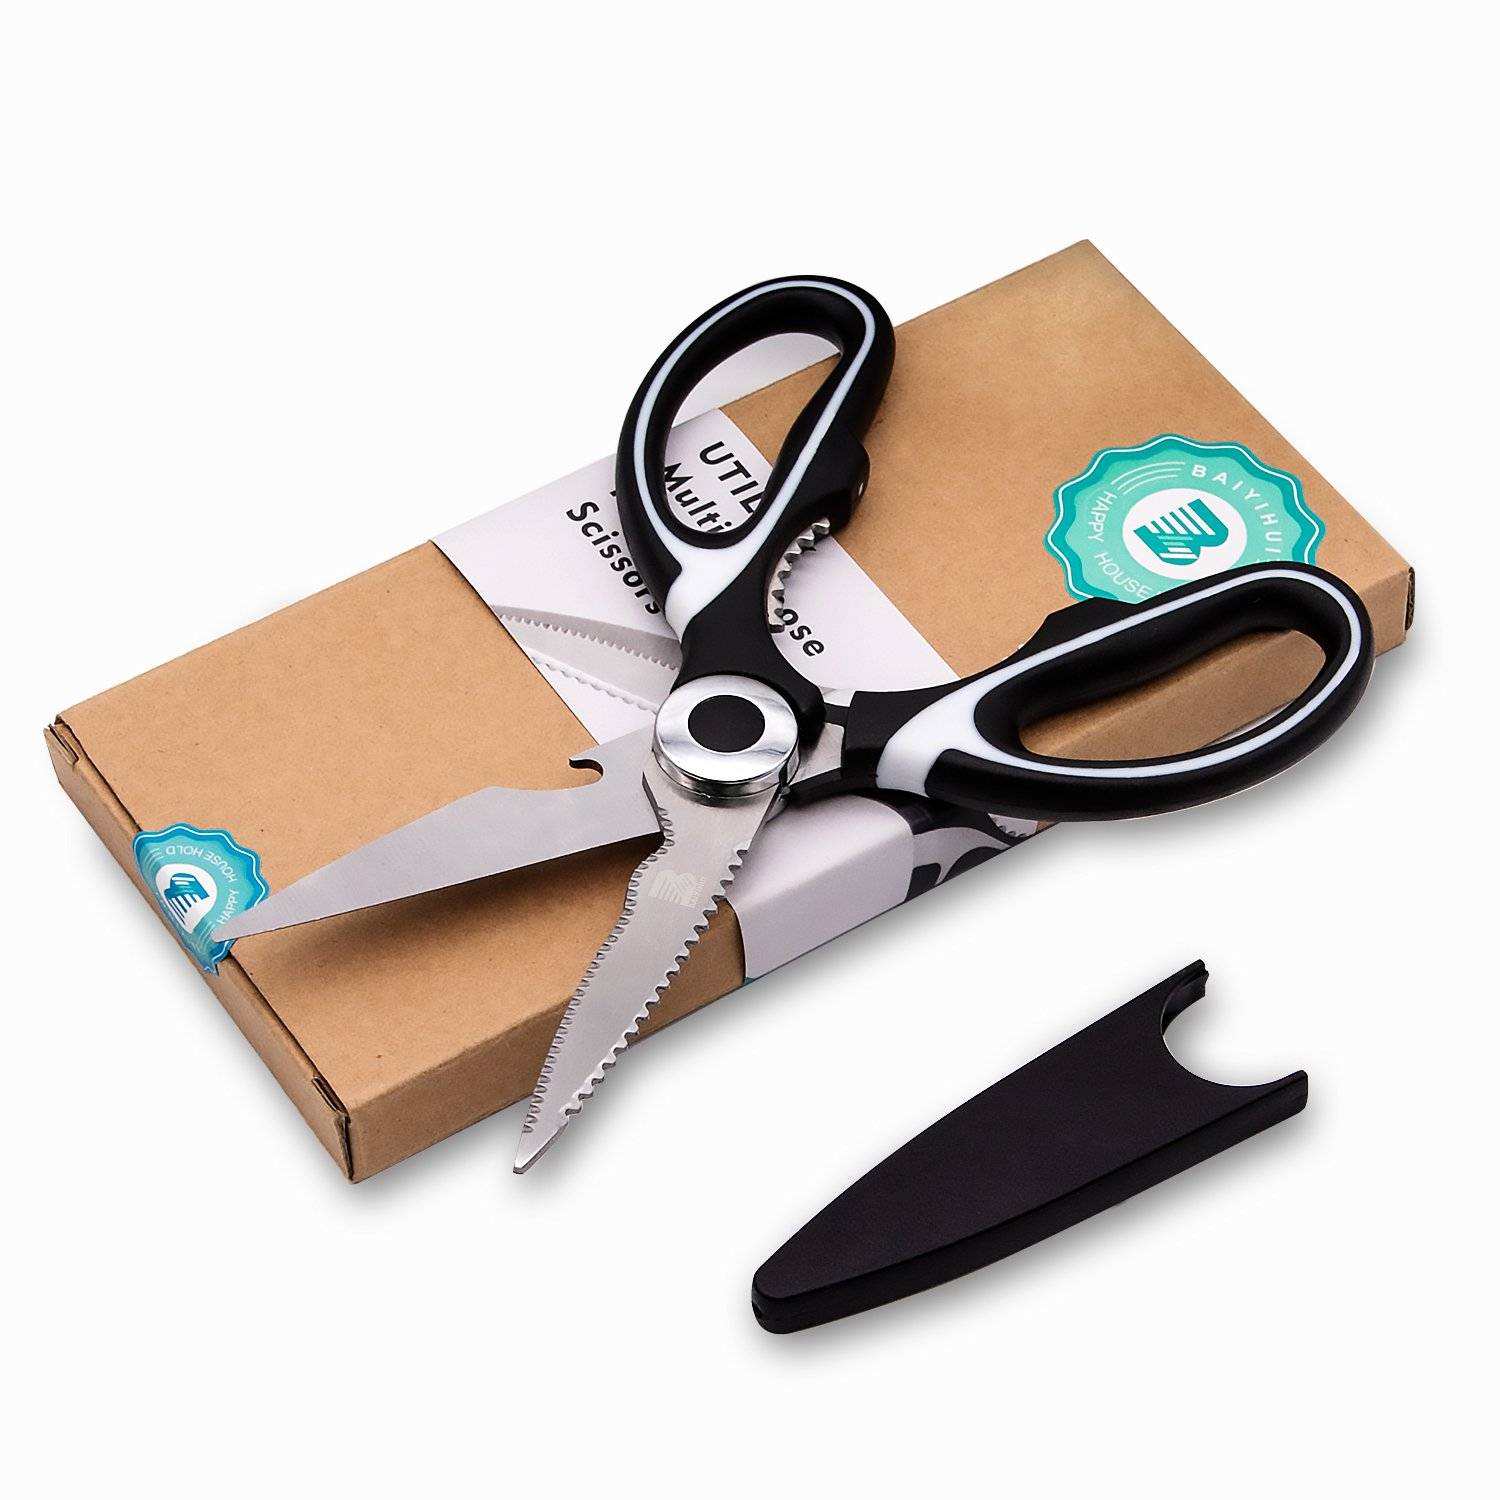 Baiyihui Multi-Purpose Kitchen Scissors, Professional SUS304 (18/8) Stainless Steel Heavy Duty Sharp Shears for Chicken, Meat, Fish, Poultry, Vegetables, Herbs, Nuts, BBQ, Wine Bottle Cap